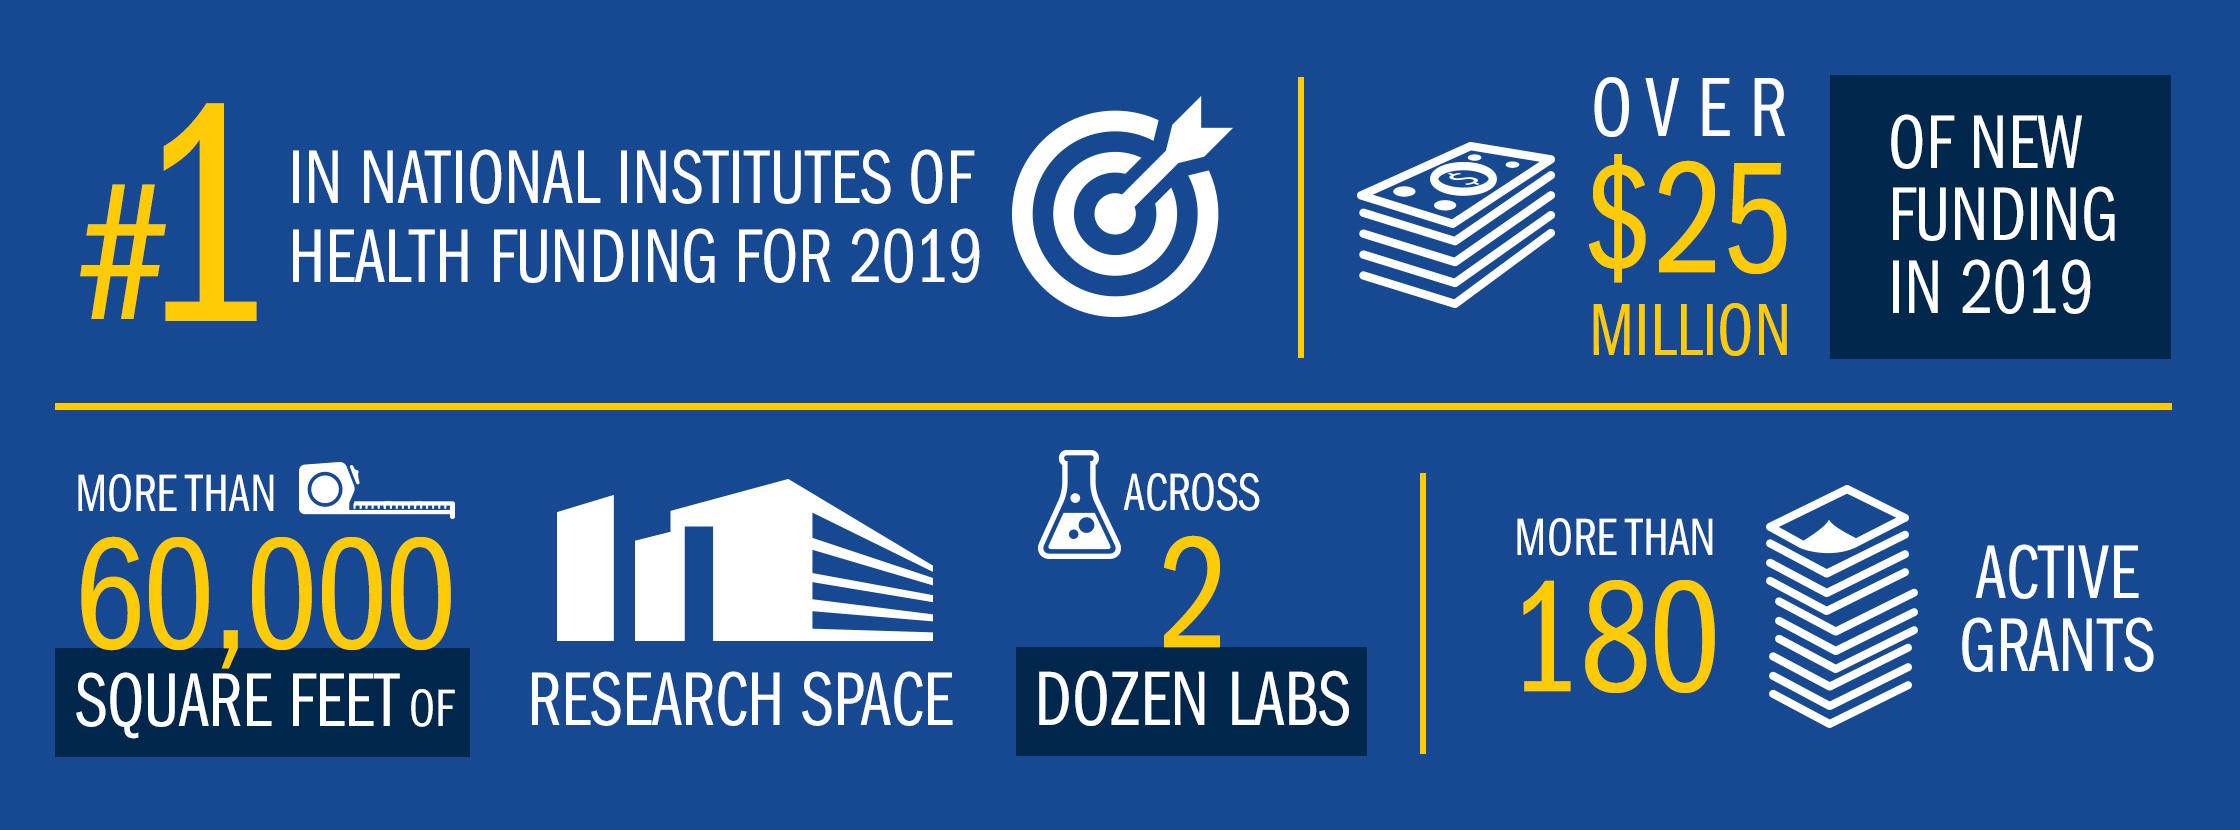 #1 in National Institutes of Health Funding for 2019; Over $25 million of new funding in 2019; More than 60,000 square feet of research space across 2 dozen labs; more than 180 active grants